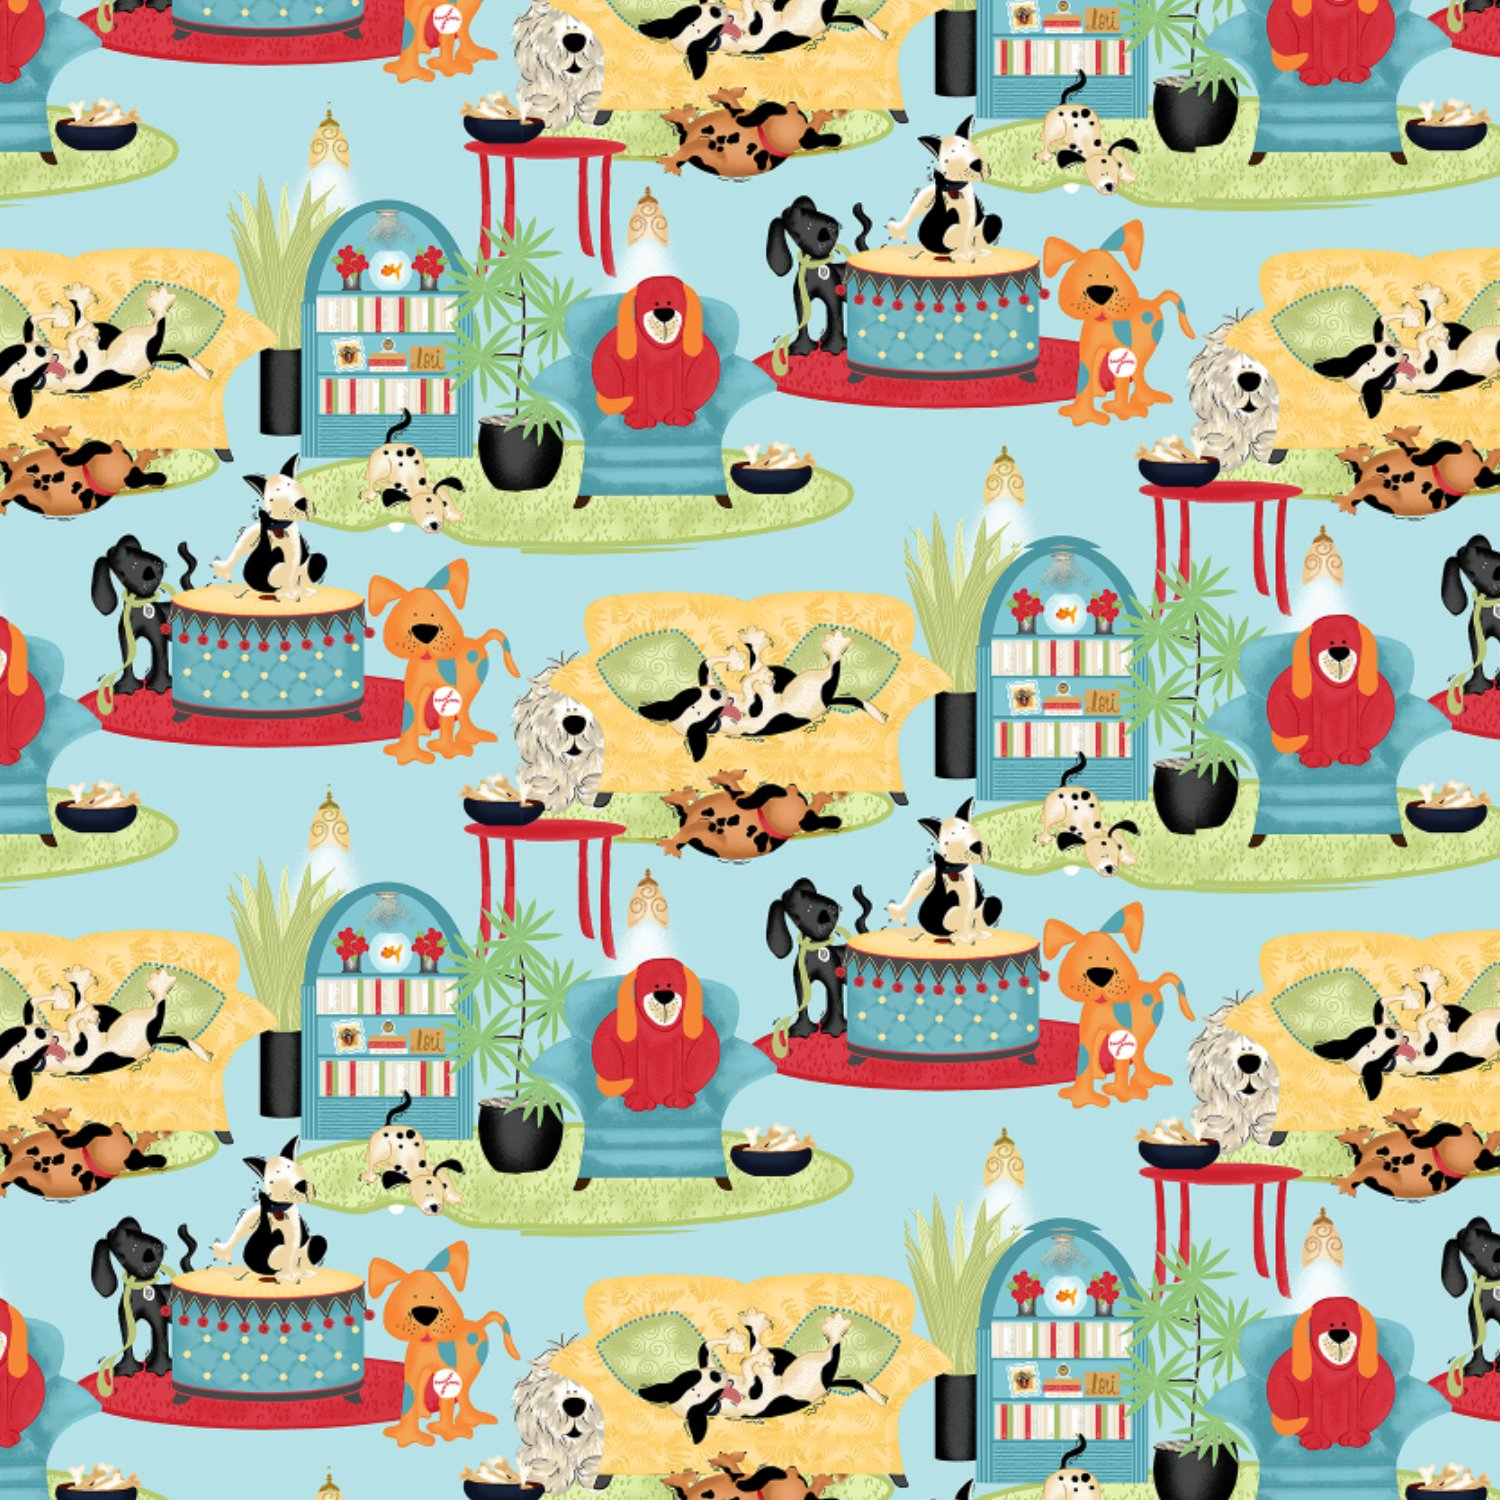 House Dogs by Lorilynn Simms for Springs Creative